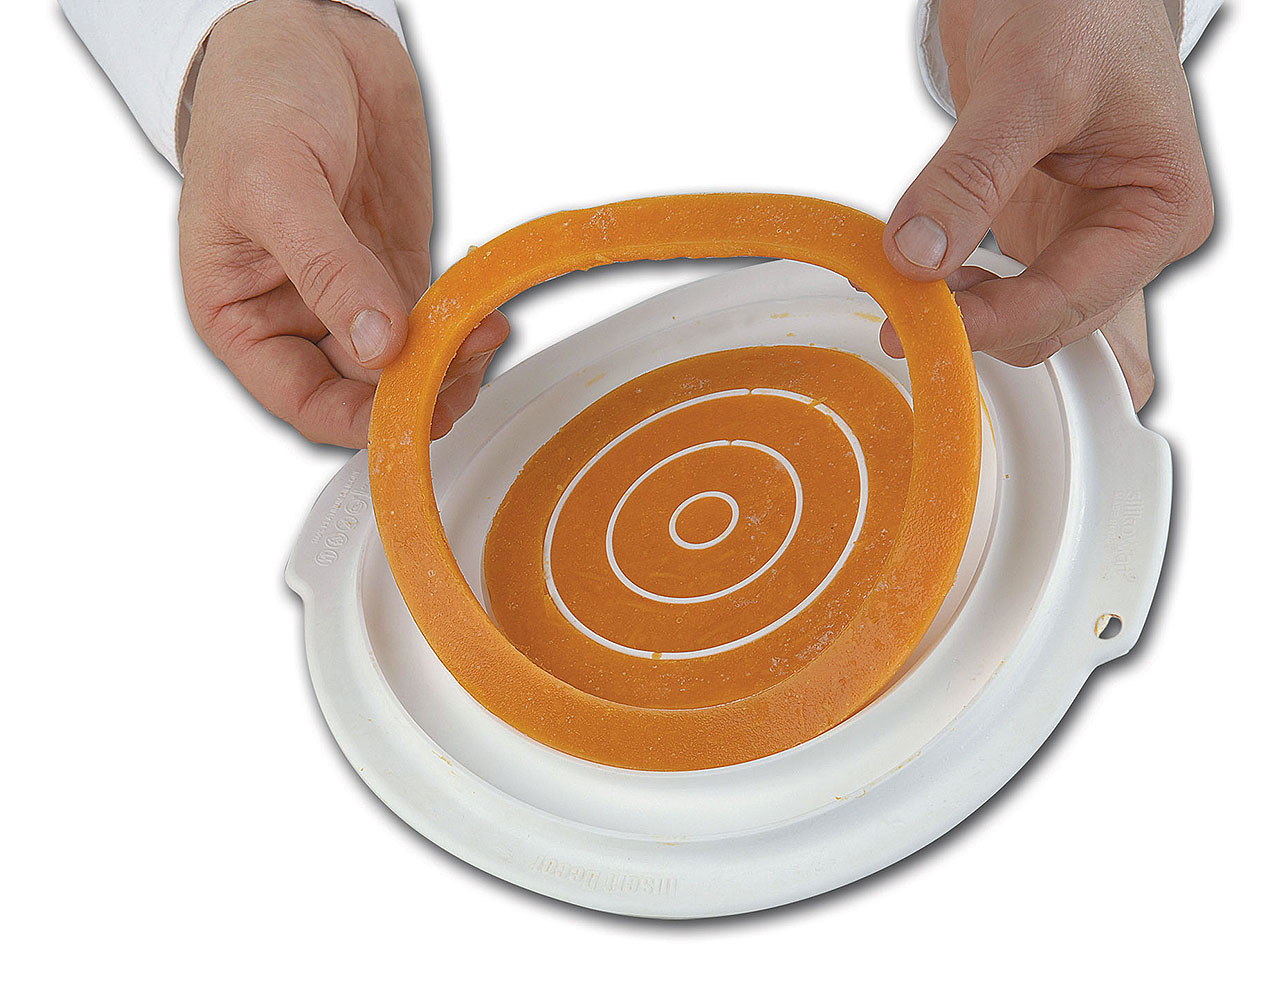 Insert silicone rond double face - Moule Silikomart Professionnel